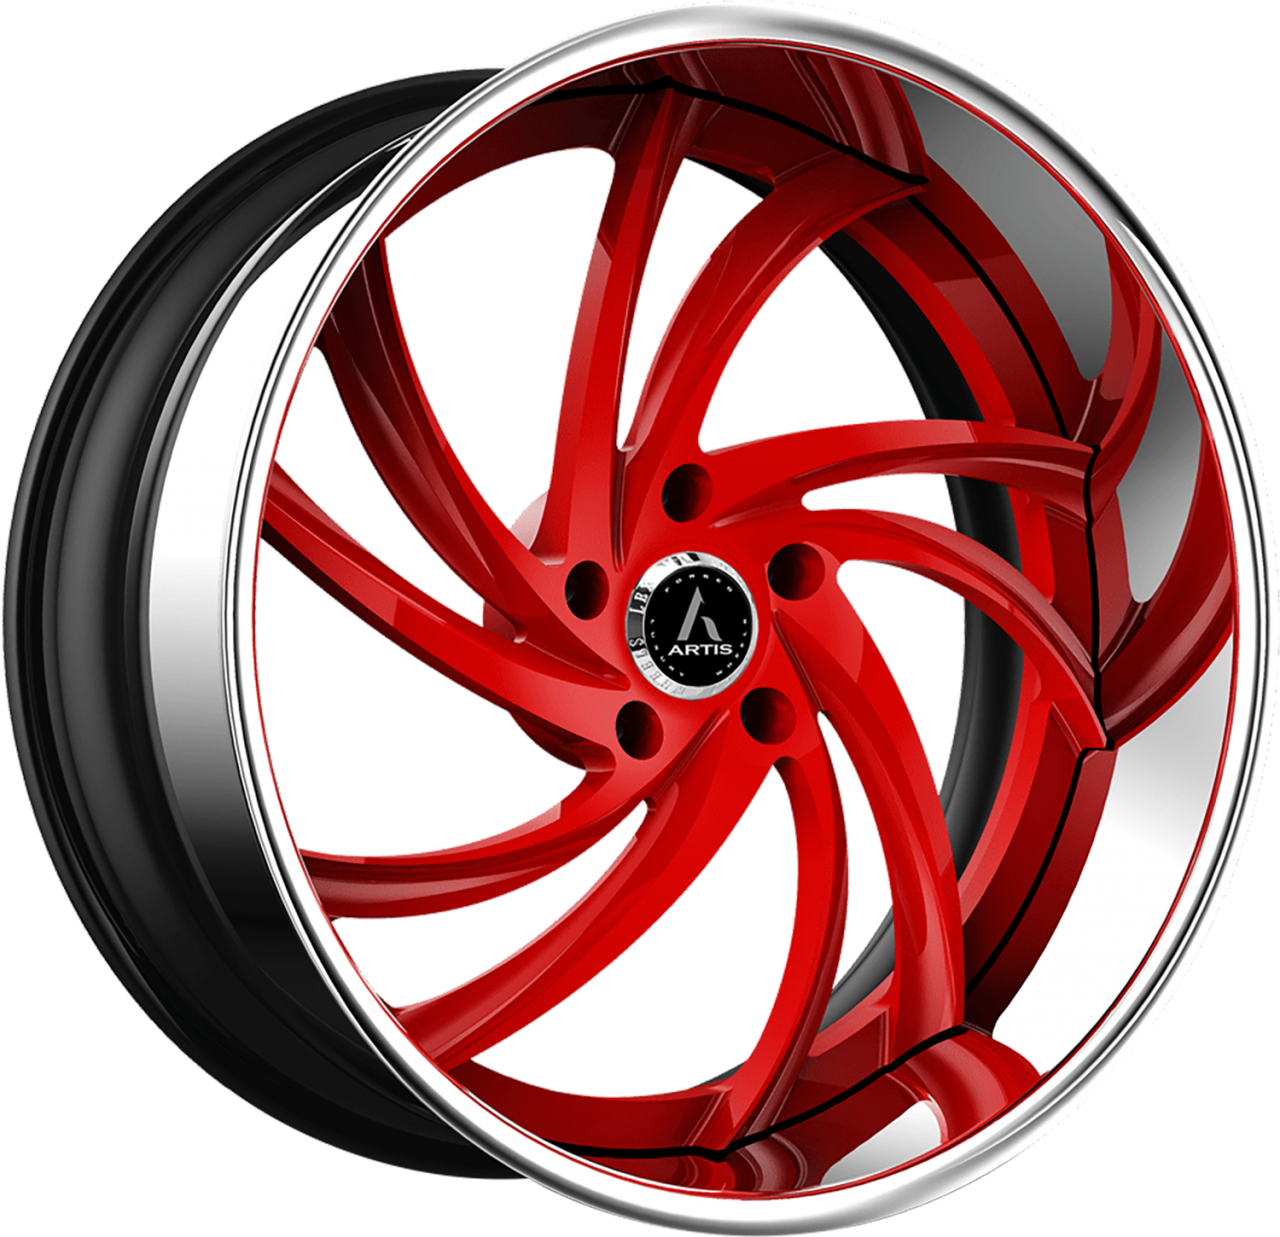 Artis Forged Twister-M wheel with Custom Red finish